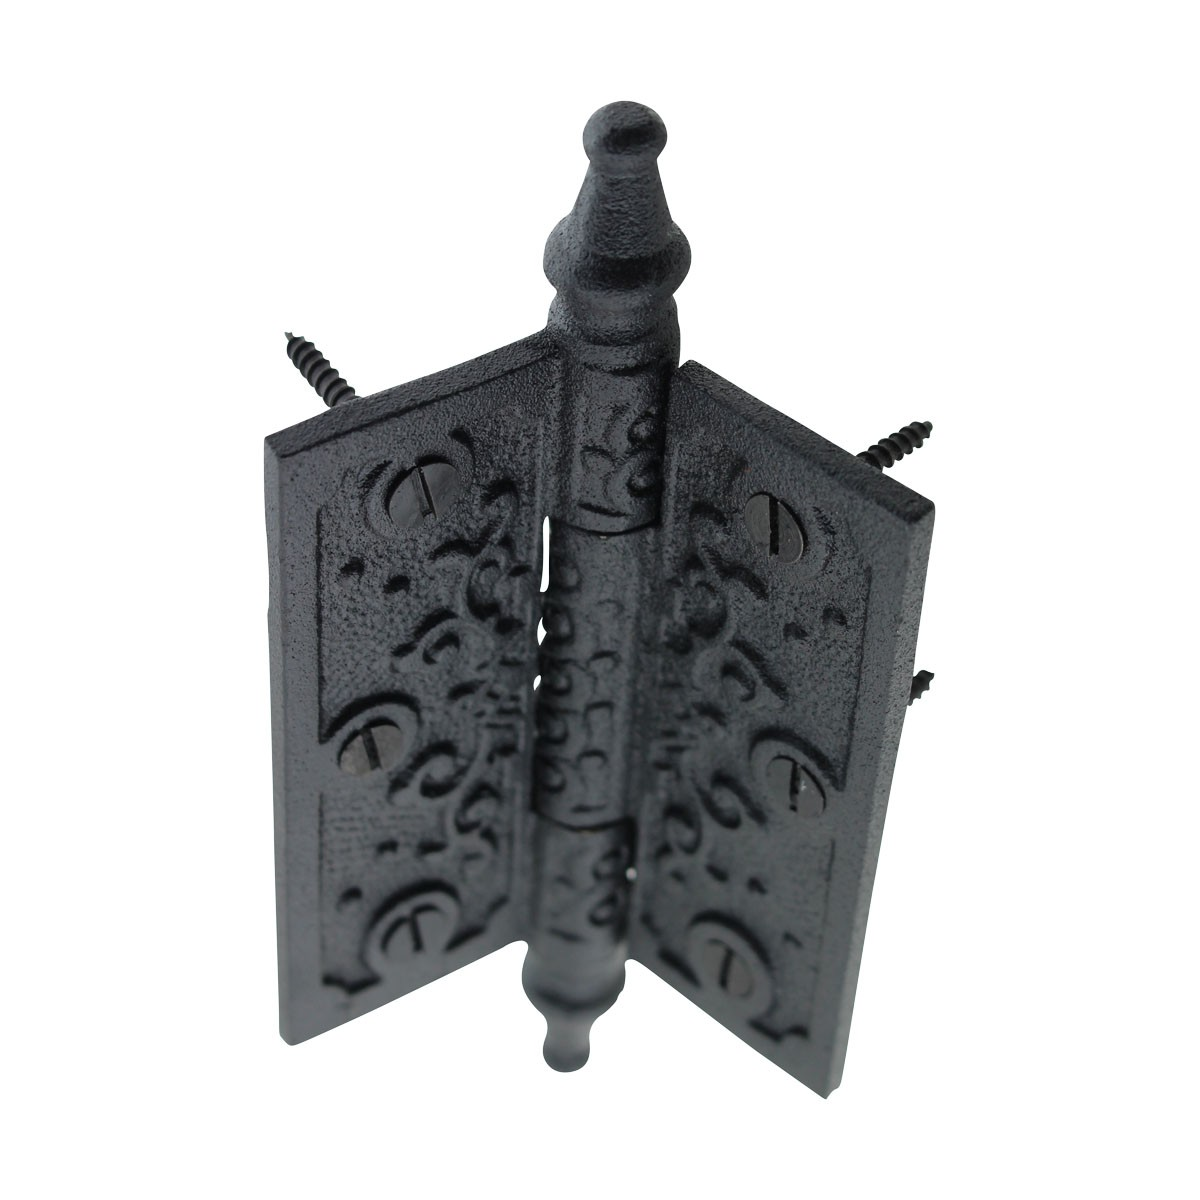 Victorian Door Hinge Steeple Tip Wrought Iron Hinges 3 Inch Steeple Tip Hinge Butt Hinge Wrought Iron Victorian Hinges